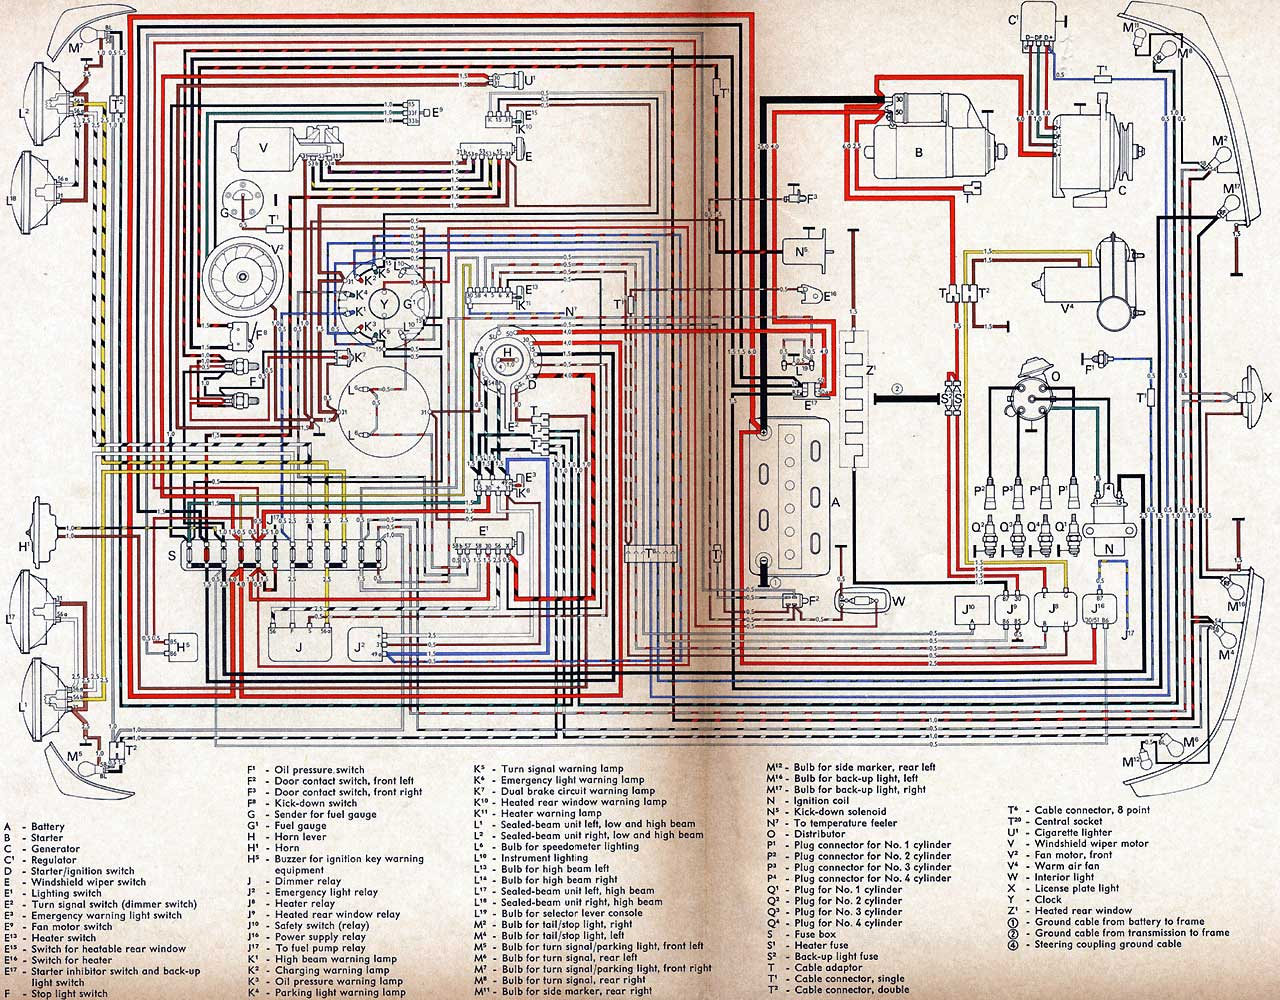 Wiring diagrams vw transistor pin out guitar speaker diagrams wiring sciox Gallery